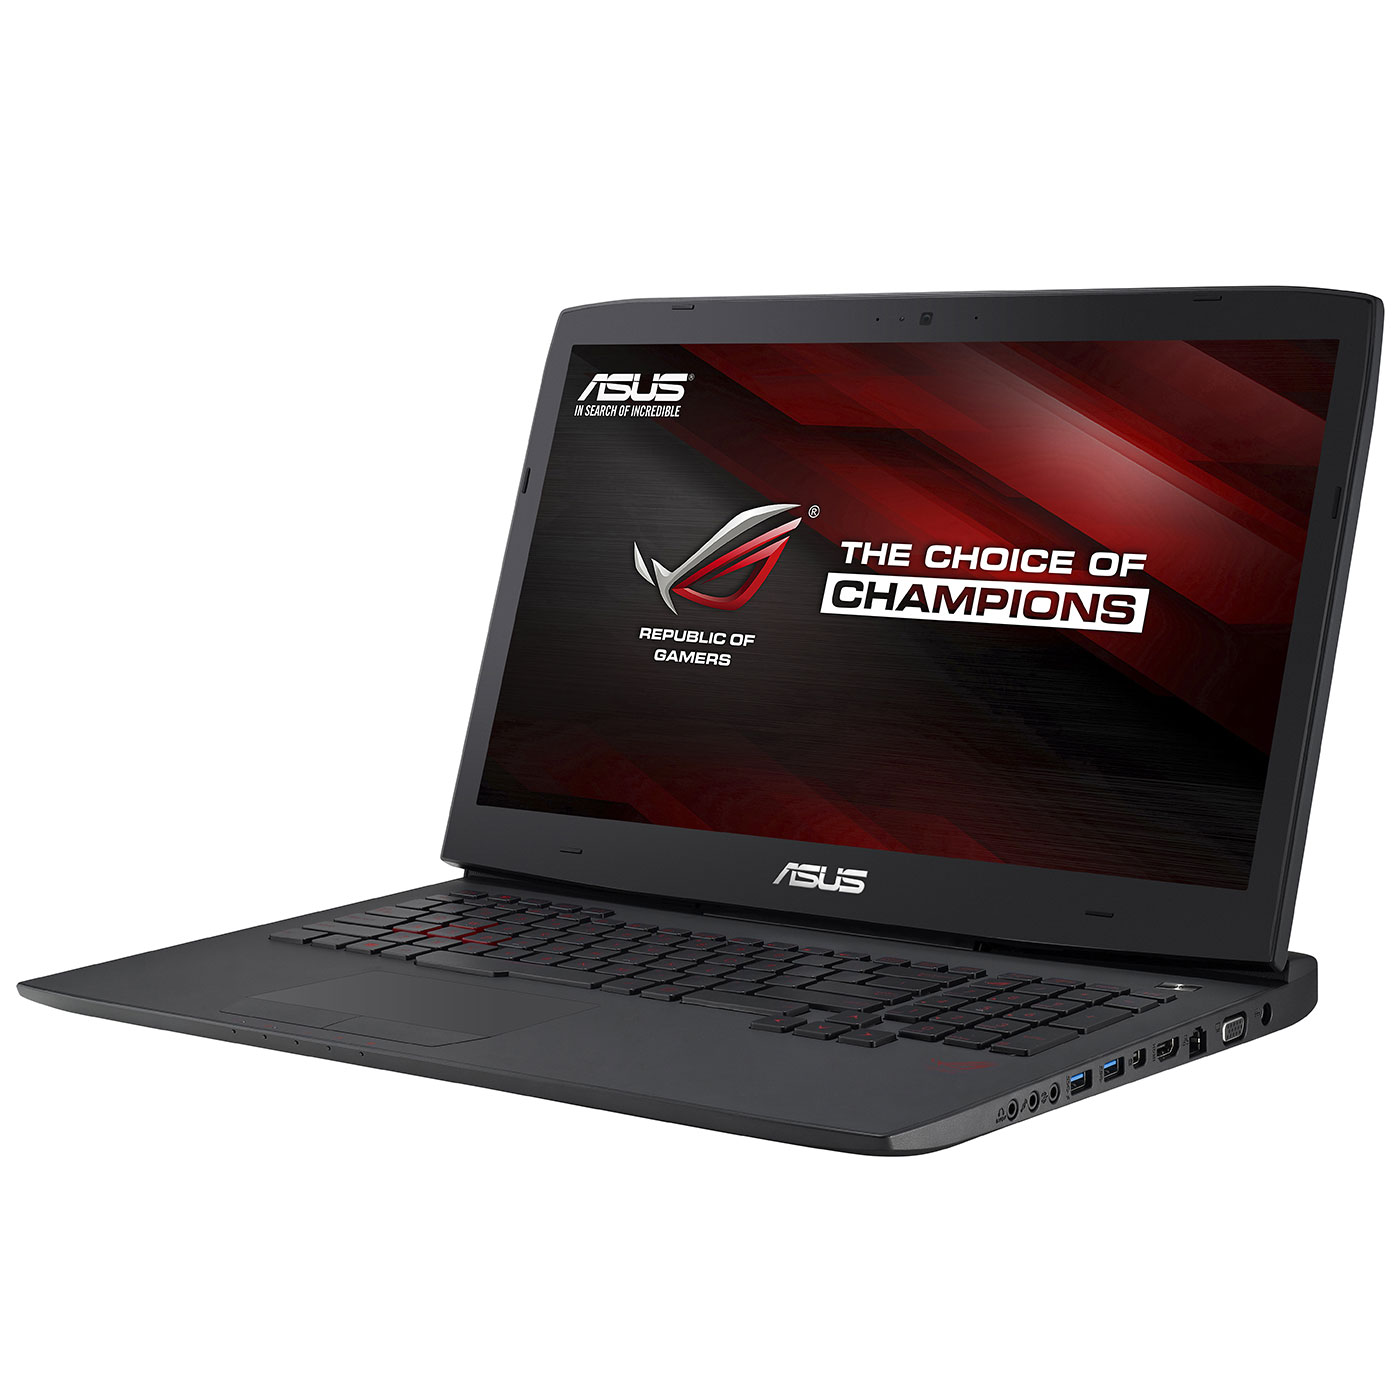 "PC portable ASUS G751JL-T7008H Intel Core i7-4720HQ 8 Go SSD 128 Go + HDD 1 To 17.3"" LED Full HD NVIDIA GeForce GTX 965M Graveur DVD Wi-Fi AC/Bluetooth Webcam Windows 8.1 64 bits (garantie constructeur 1 an)"